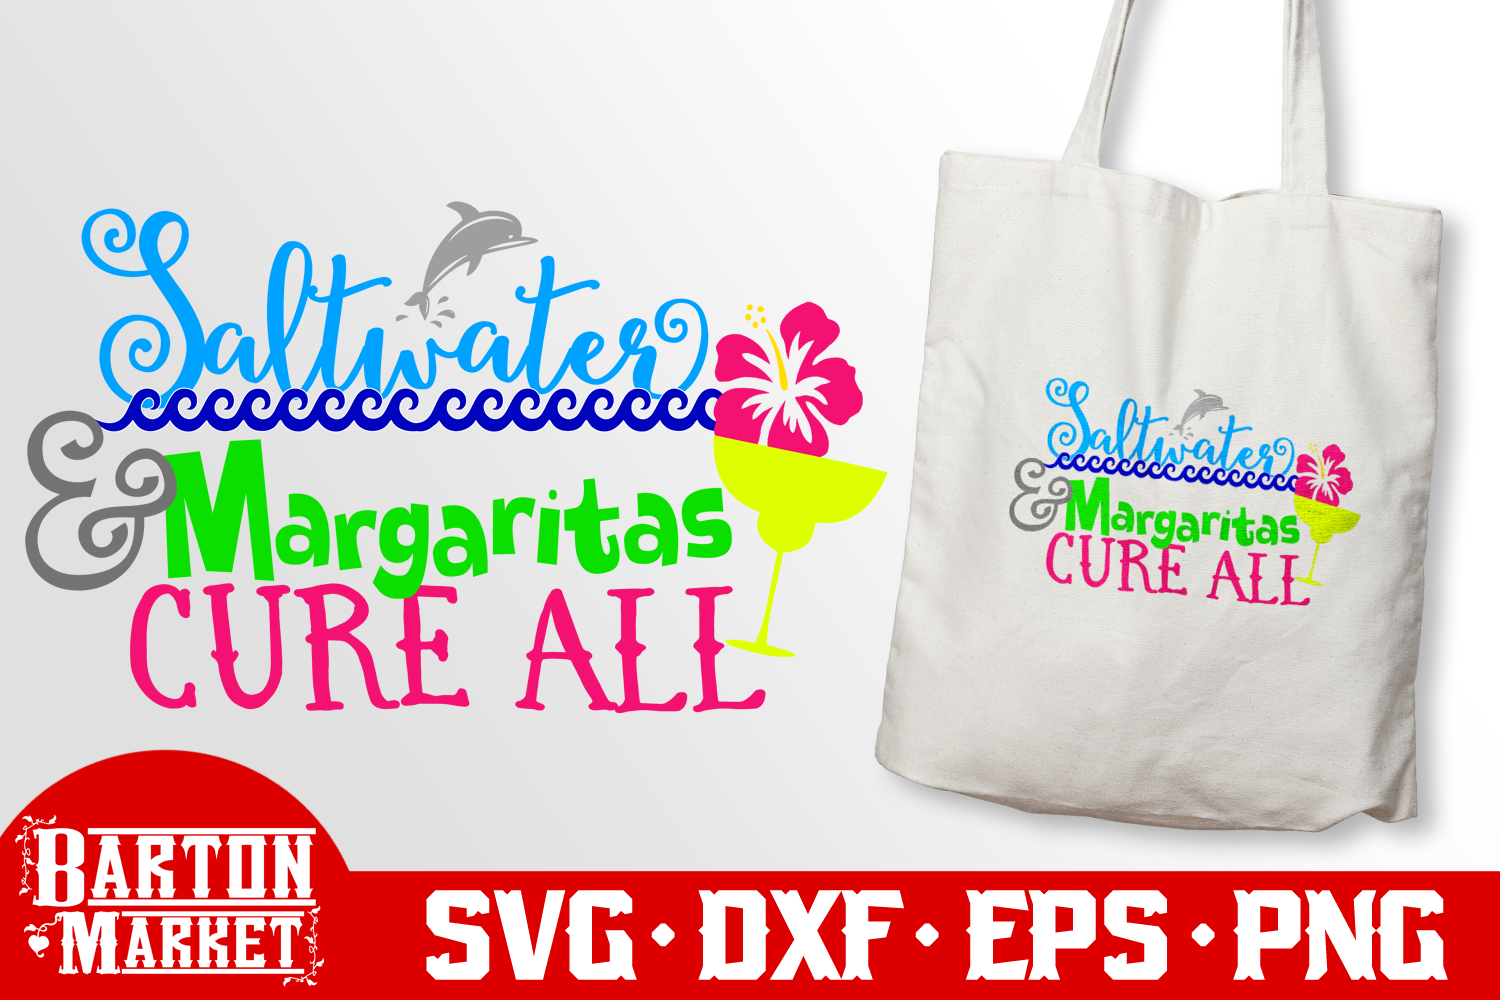 Saltwater & Margaritas Cure All SVG DXF EPS PNG example image 3